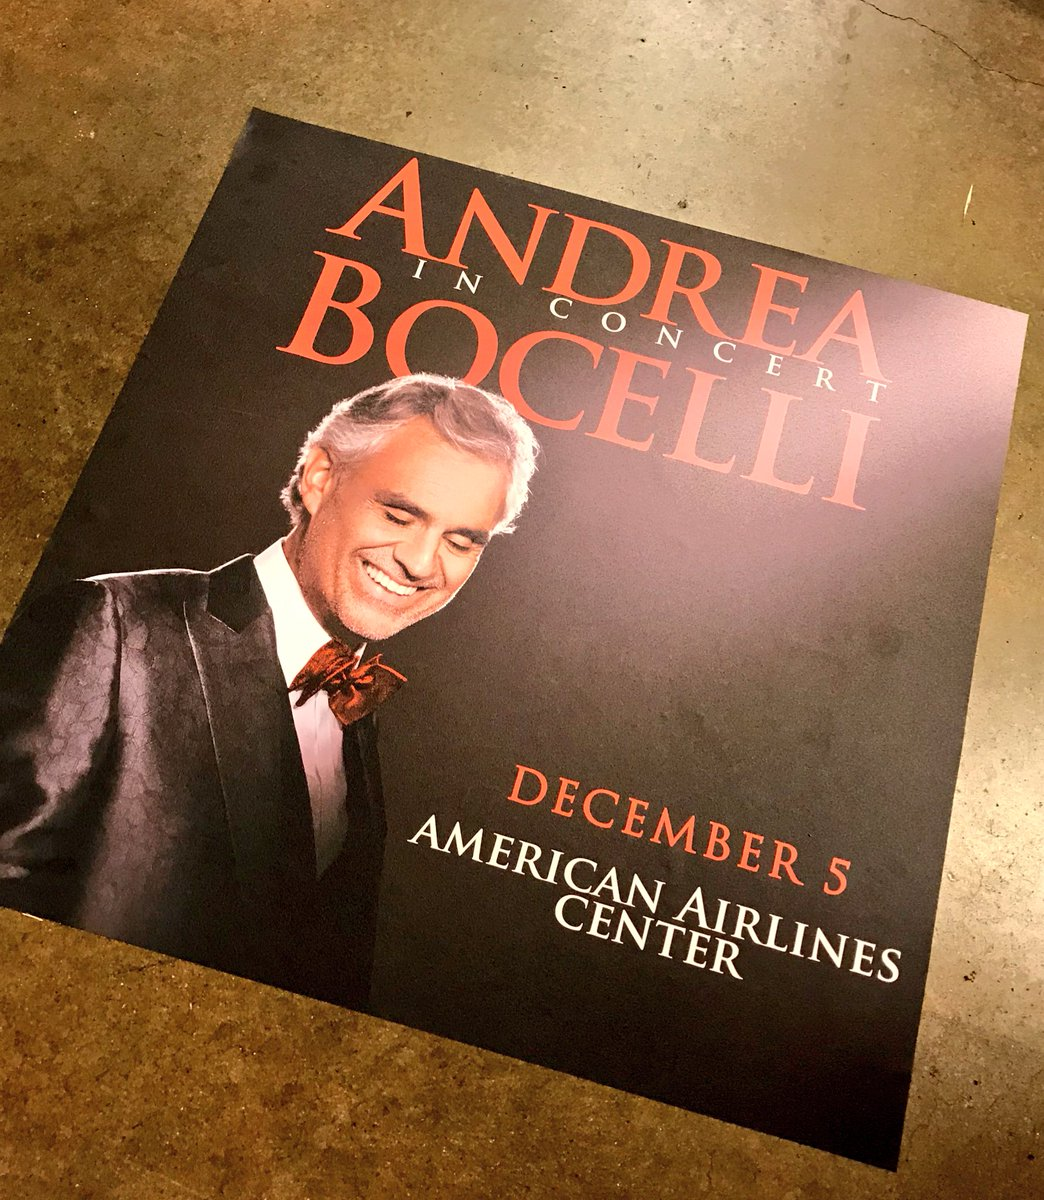 Welcome to Dallas @AndreaBocelli!! See you tonight!